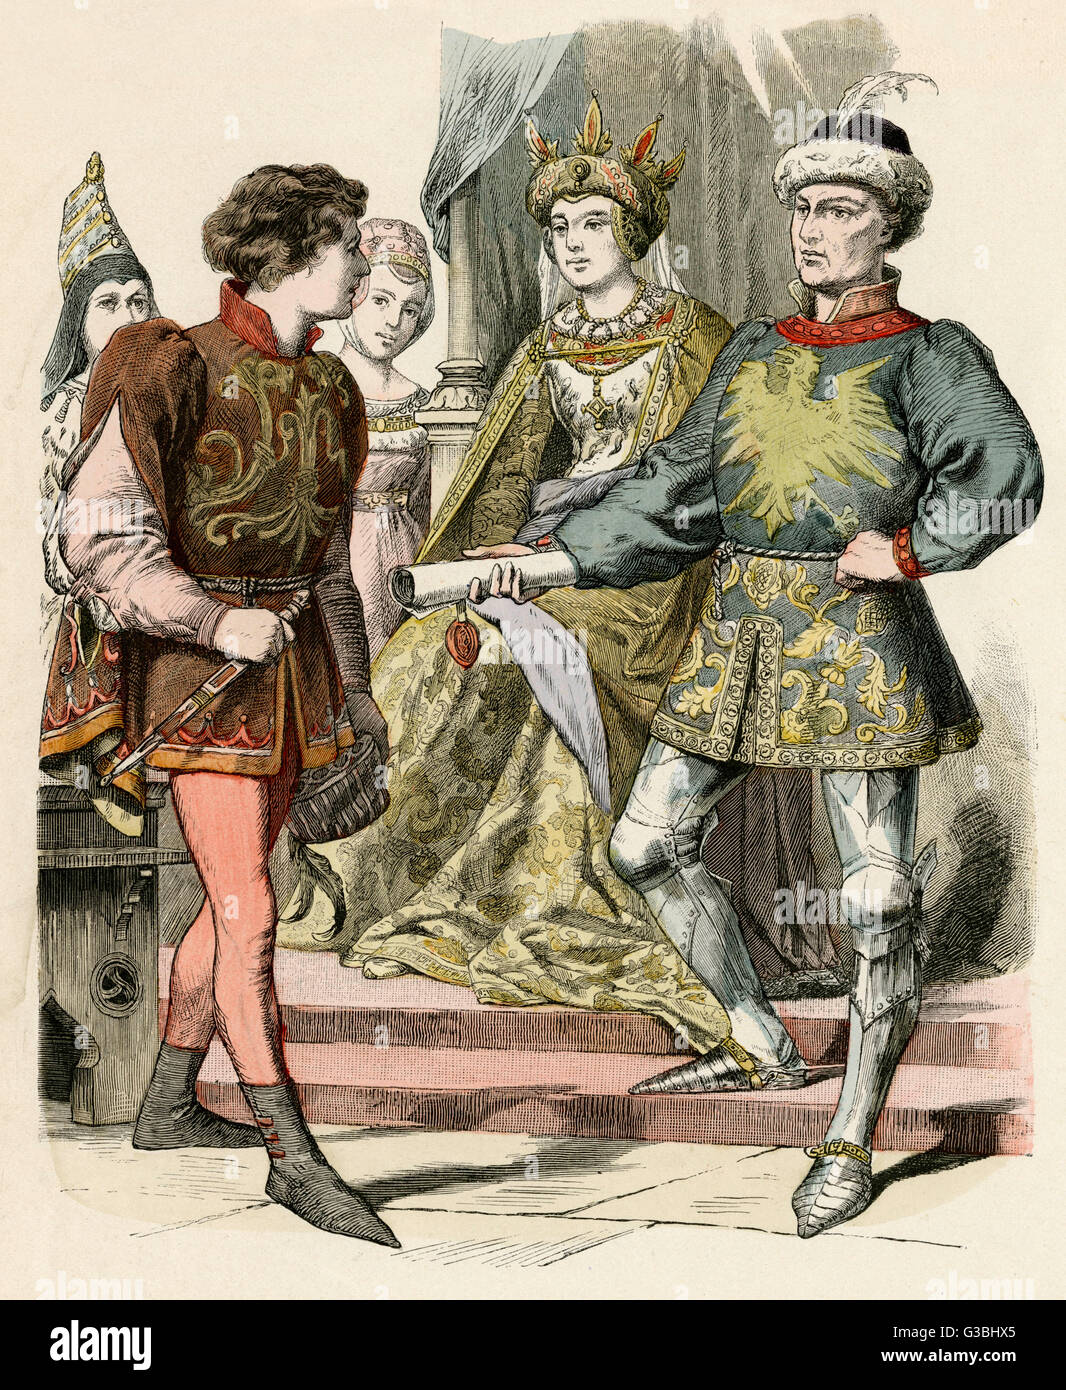 Short jacket or jerkin with  hanging sleeves & collar worn  over a doublet, hose & piked  boots - Stock Image